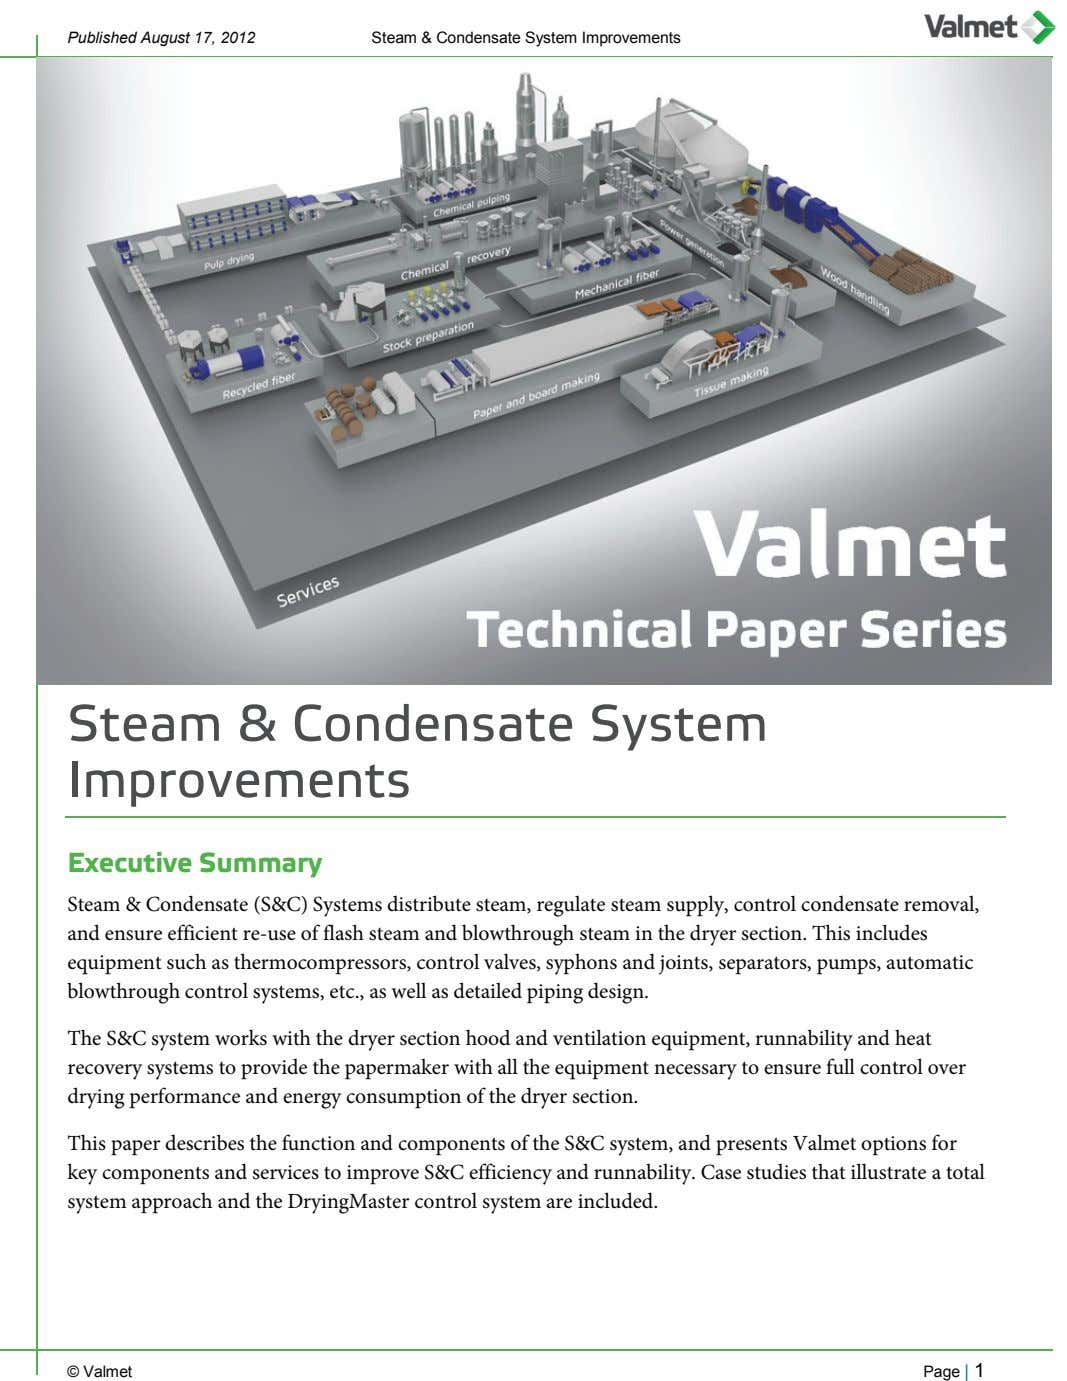 Published August 17, 2012 Steam & Condensate System Improvements Steam & Condensate System Improvements